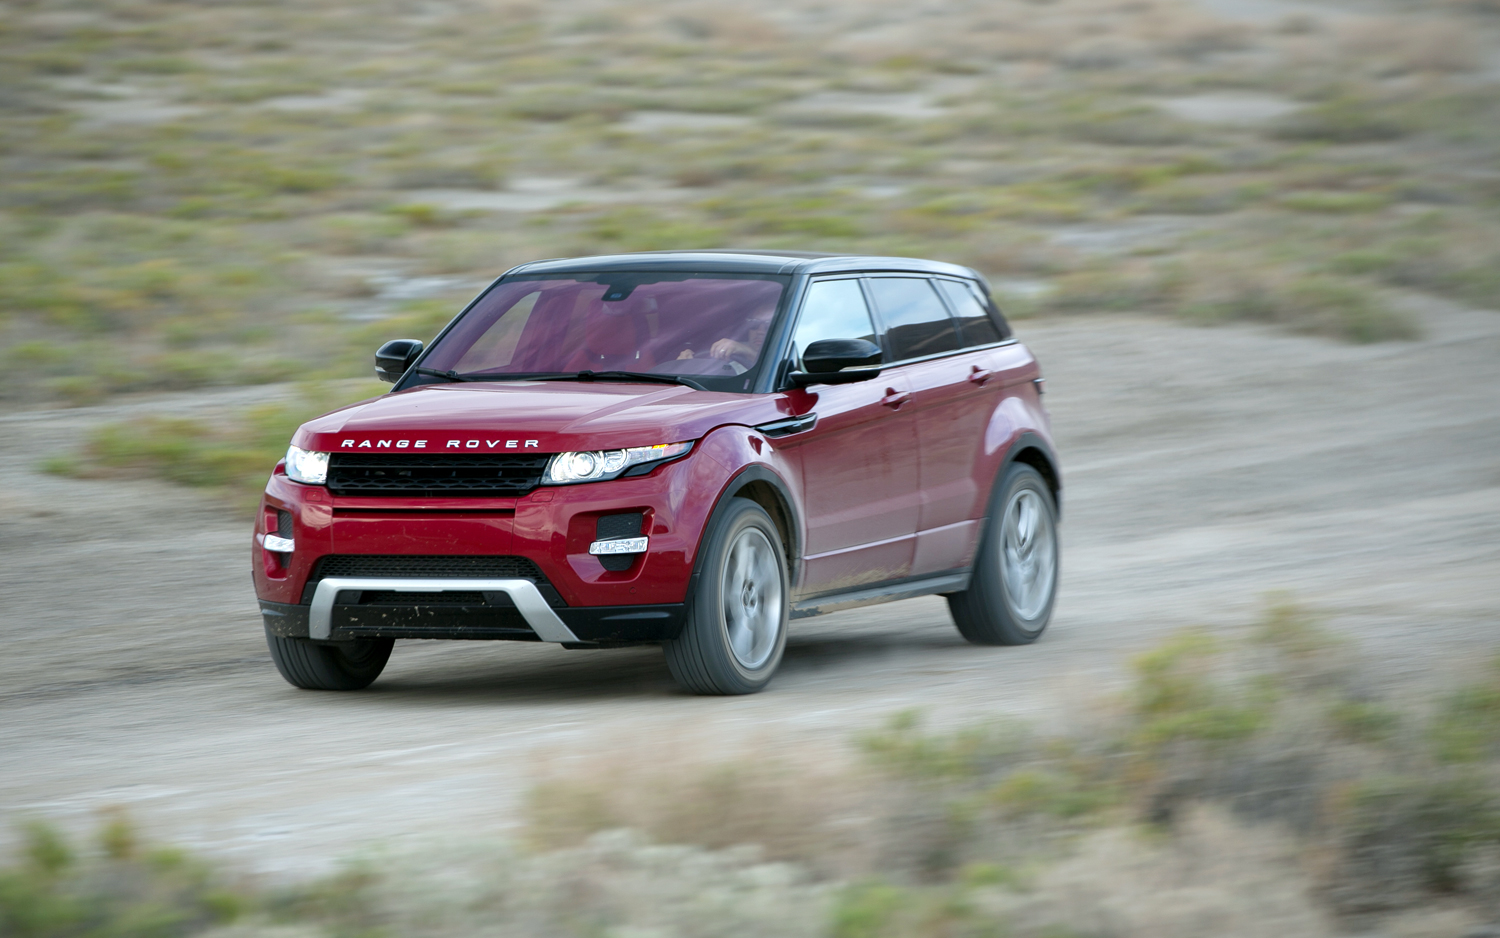 2012 Land Rover Range Rover Evoque Long-Term Update 4